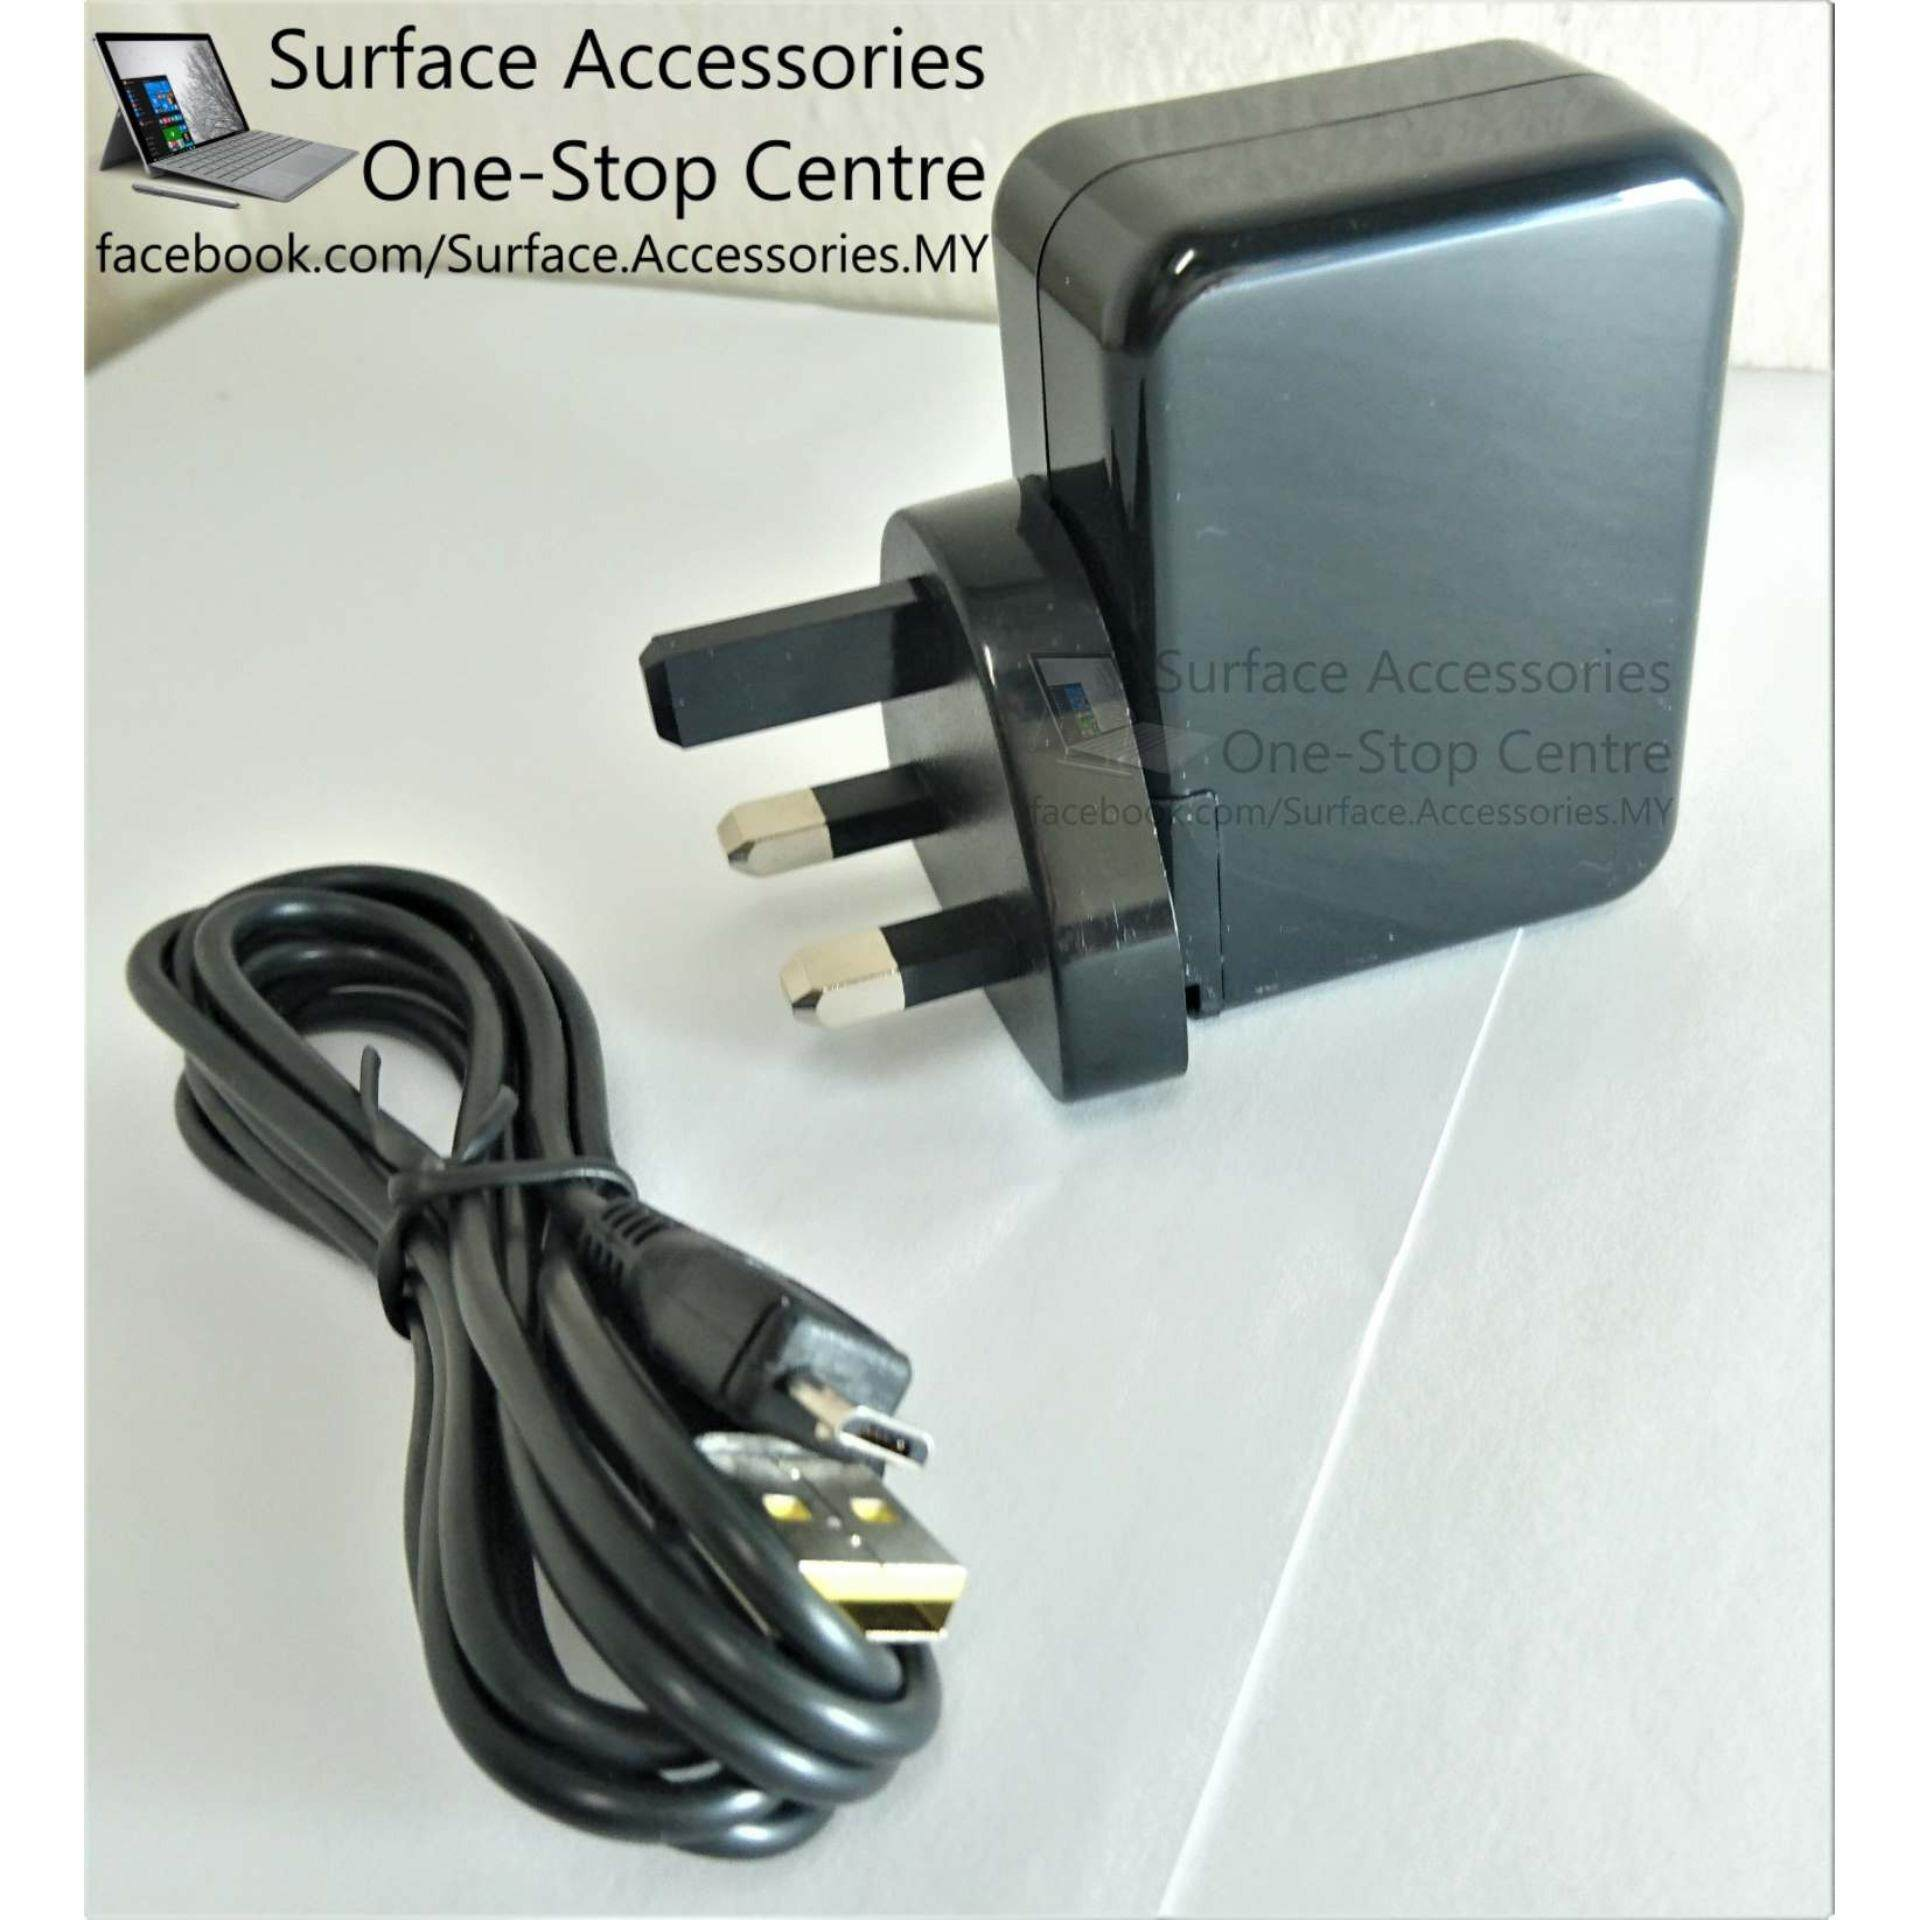 [MALAYSIA] Surface 3 Charger with Quality High Gauge Micro-USB Charger Cable Charger Microsoft Surface 3 Charger 5.2V 2.5A